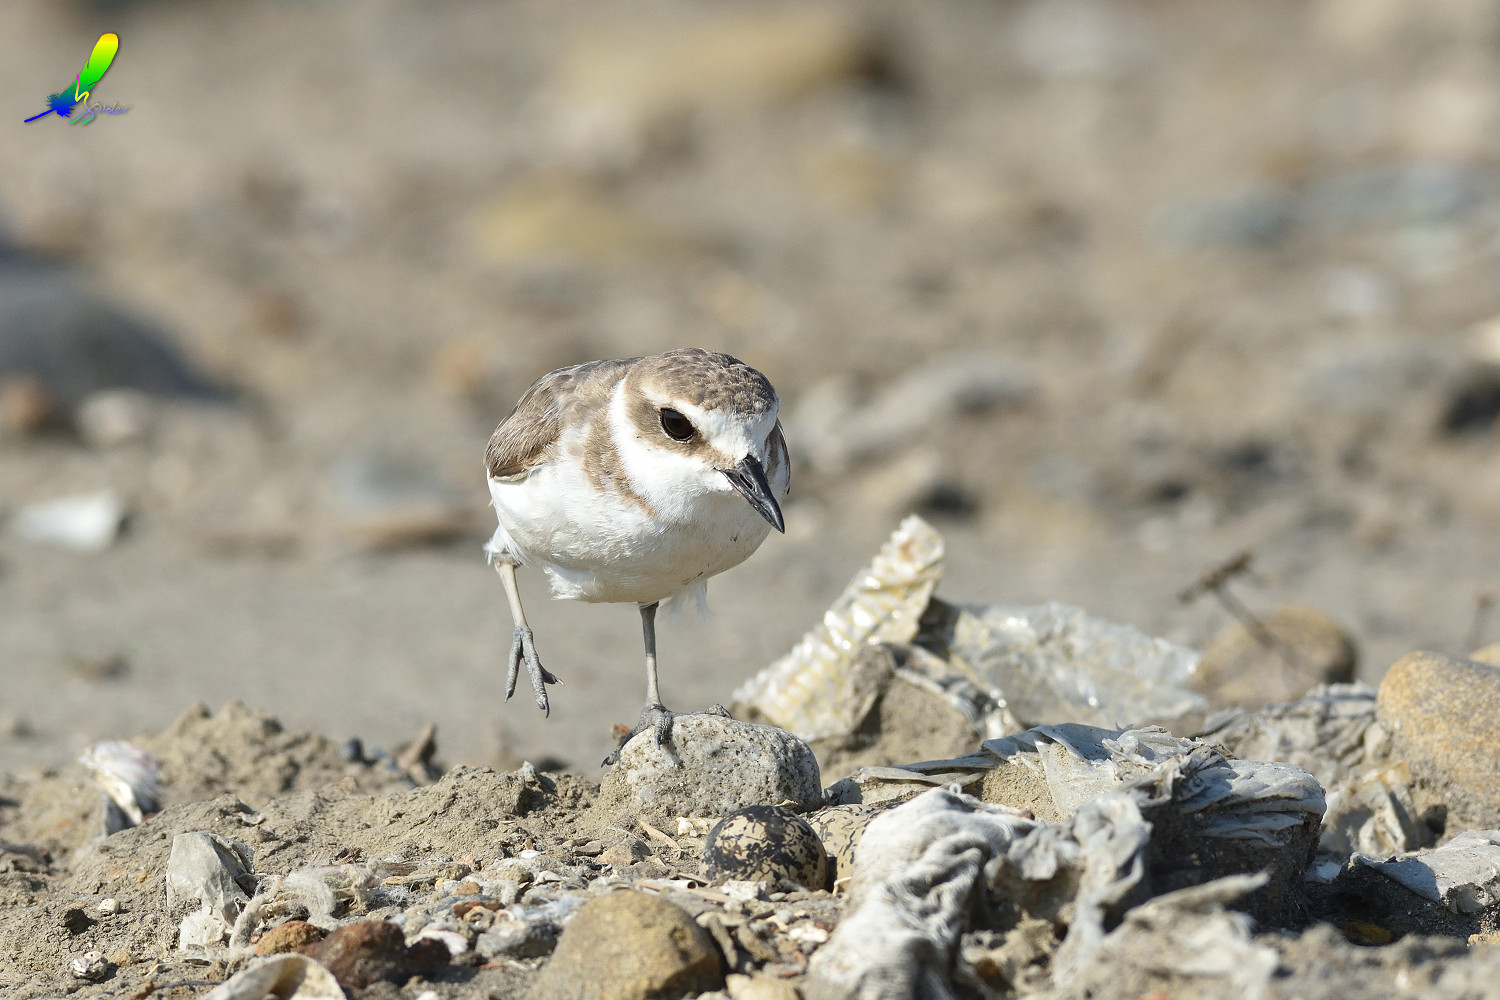 Kentish_Plover_9831